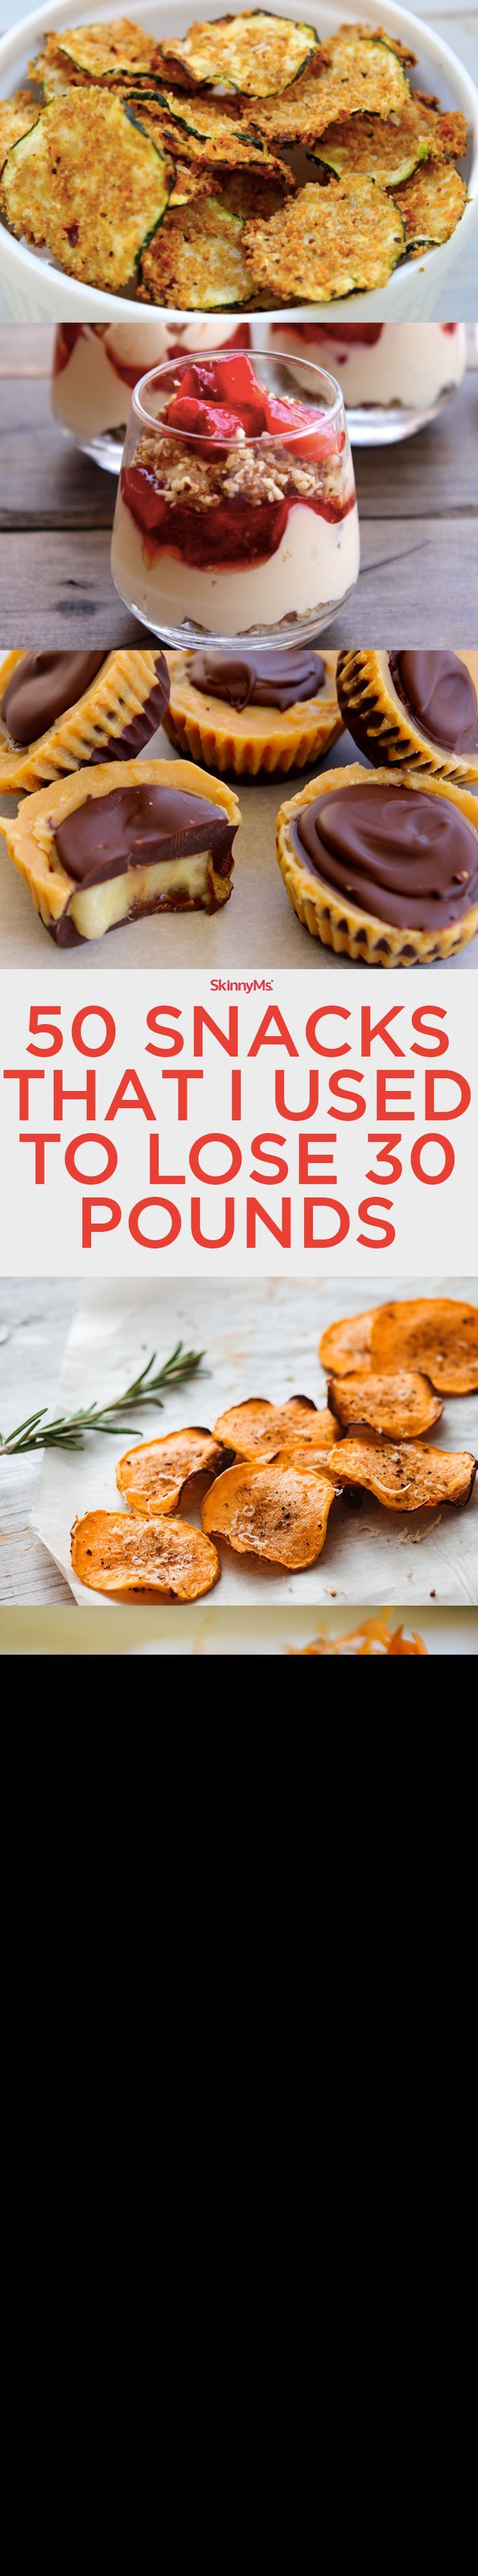 50 Snacks That I Used to Lose 30 Pounds. Includes SmartPoints for every recipe!